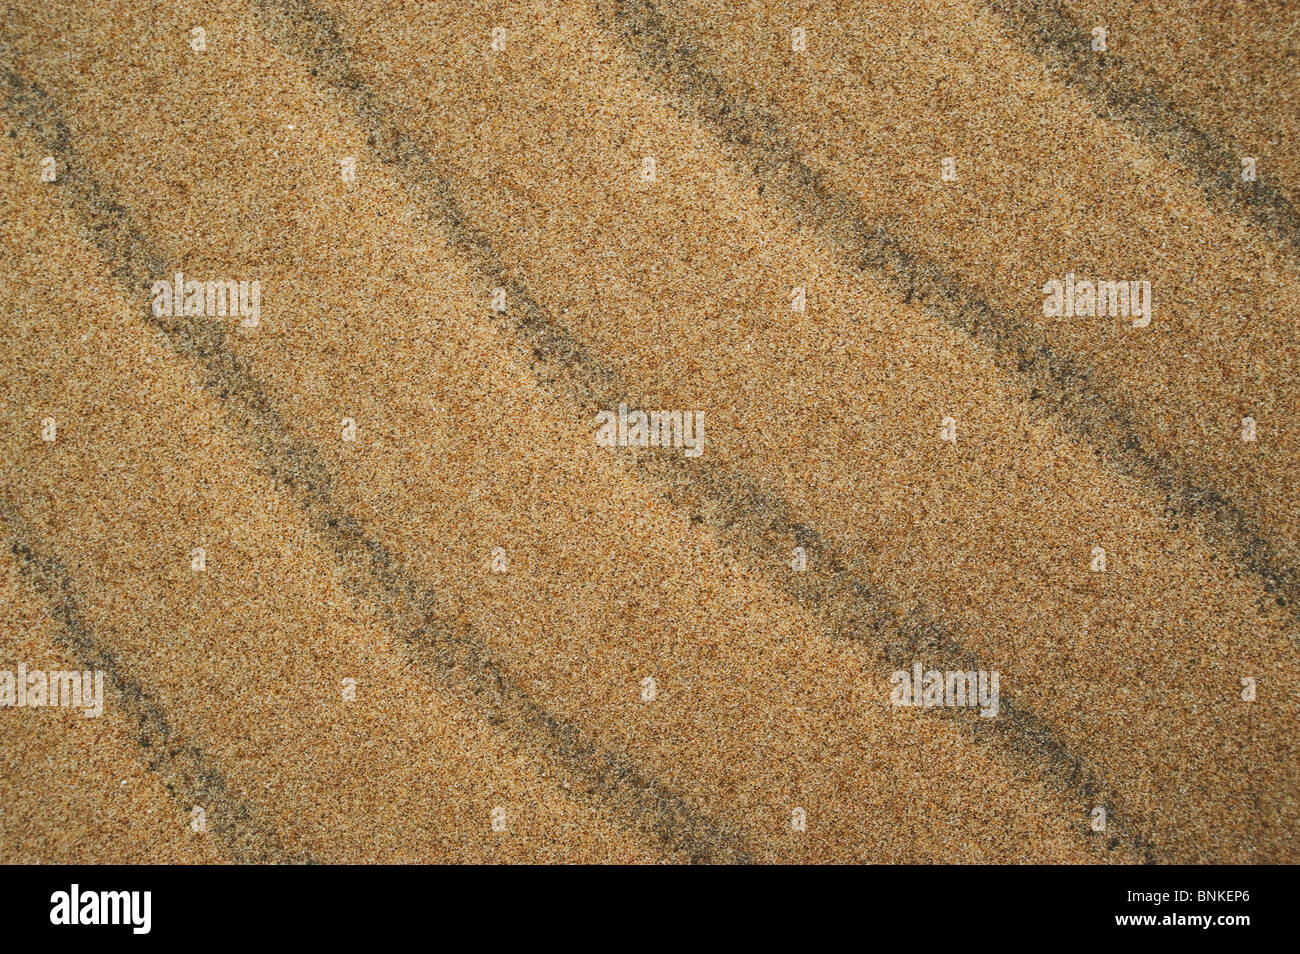 Sand patterns. - Stock Image